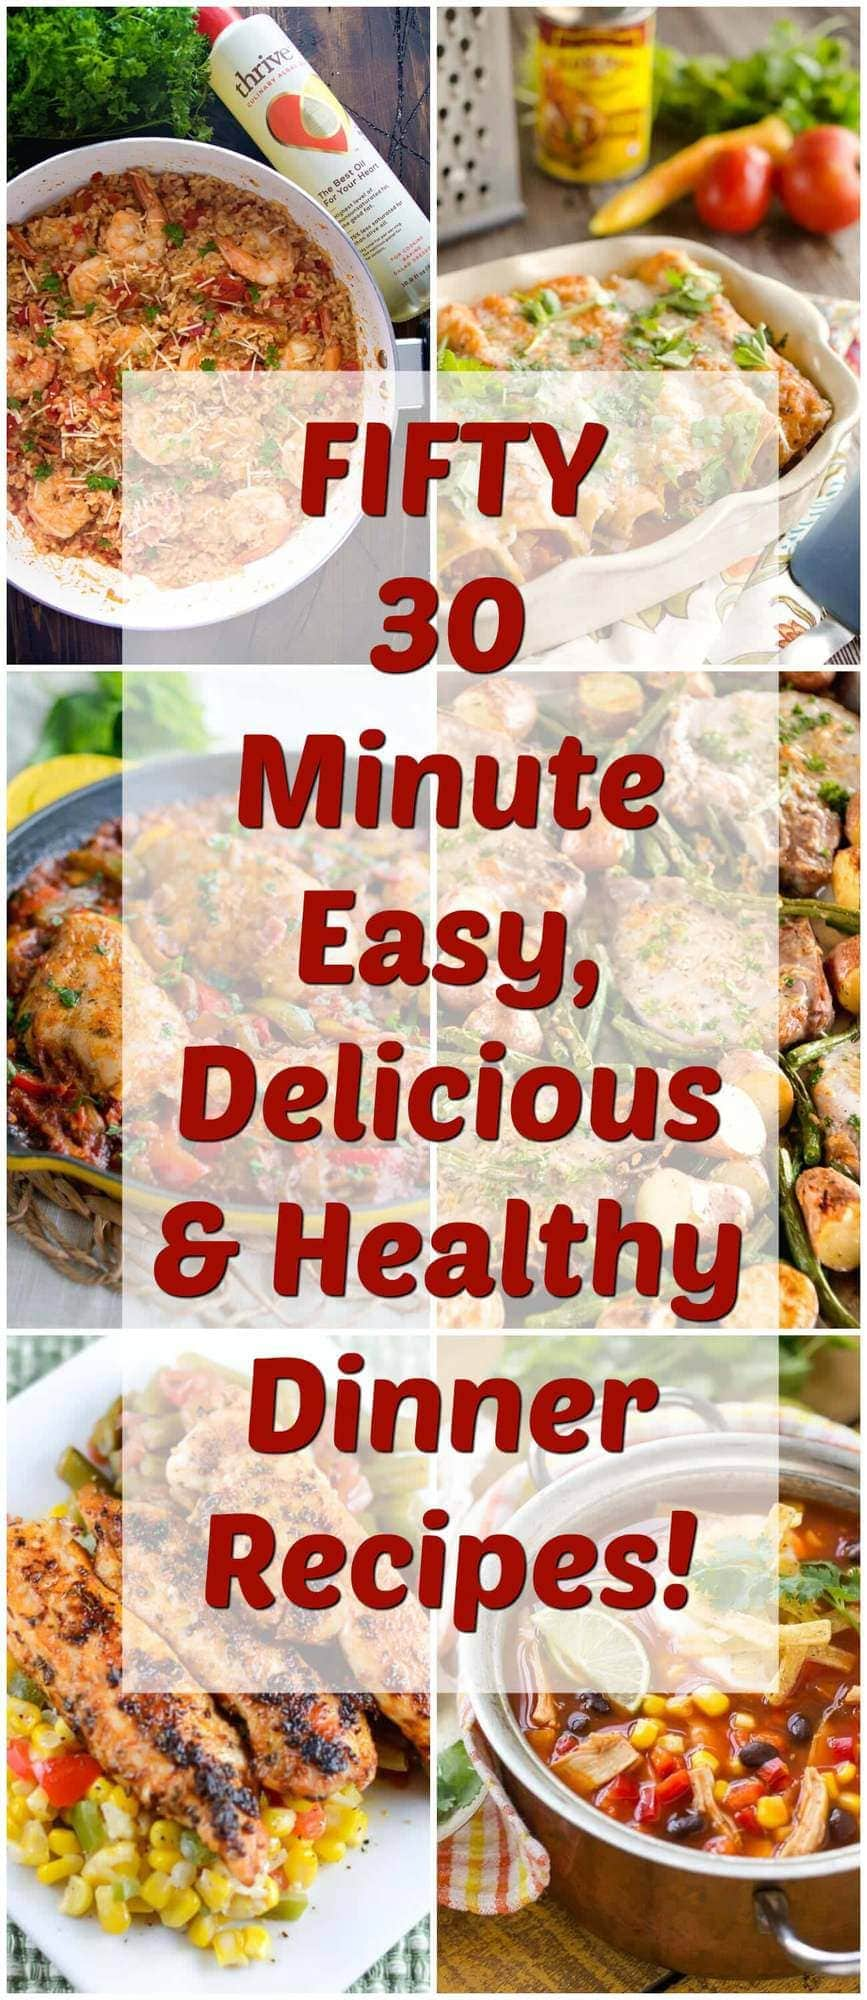 Fifty 30 Minute Easy Delicious Amp Healthy Dinner Recipes